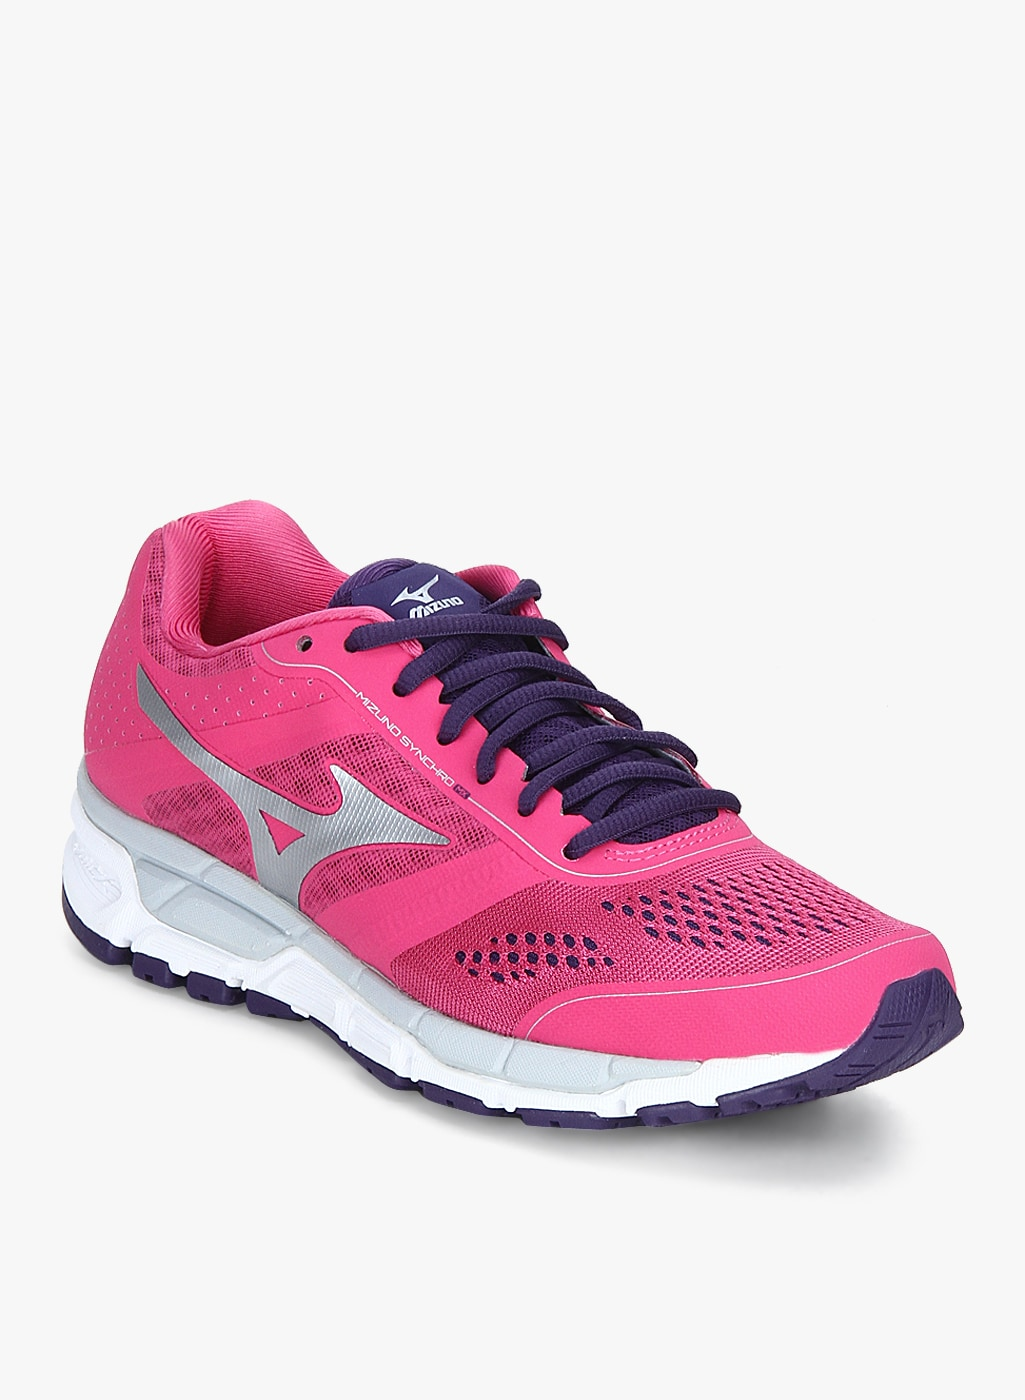 858ba93b377a Buy Wave Inspire 12 Pink Running Shoes - Sports Shoes for Women ...